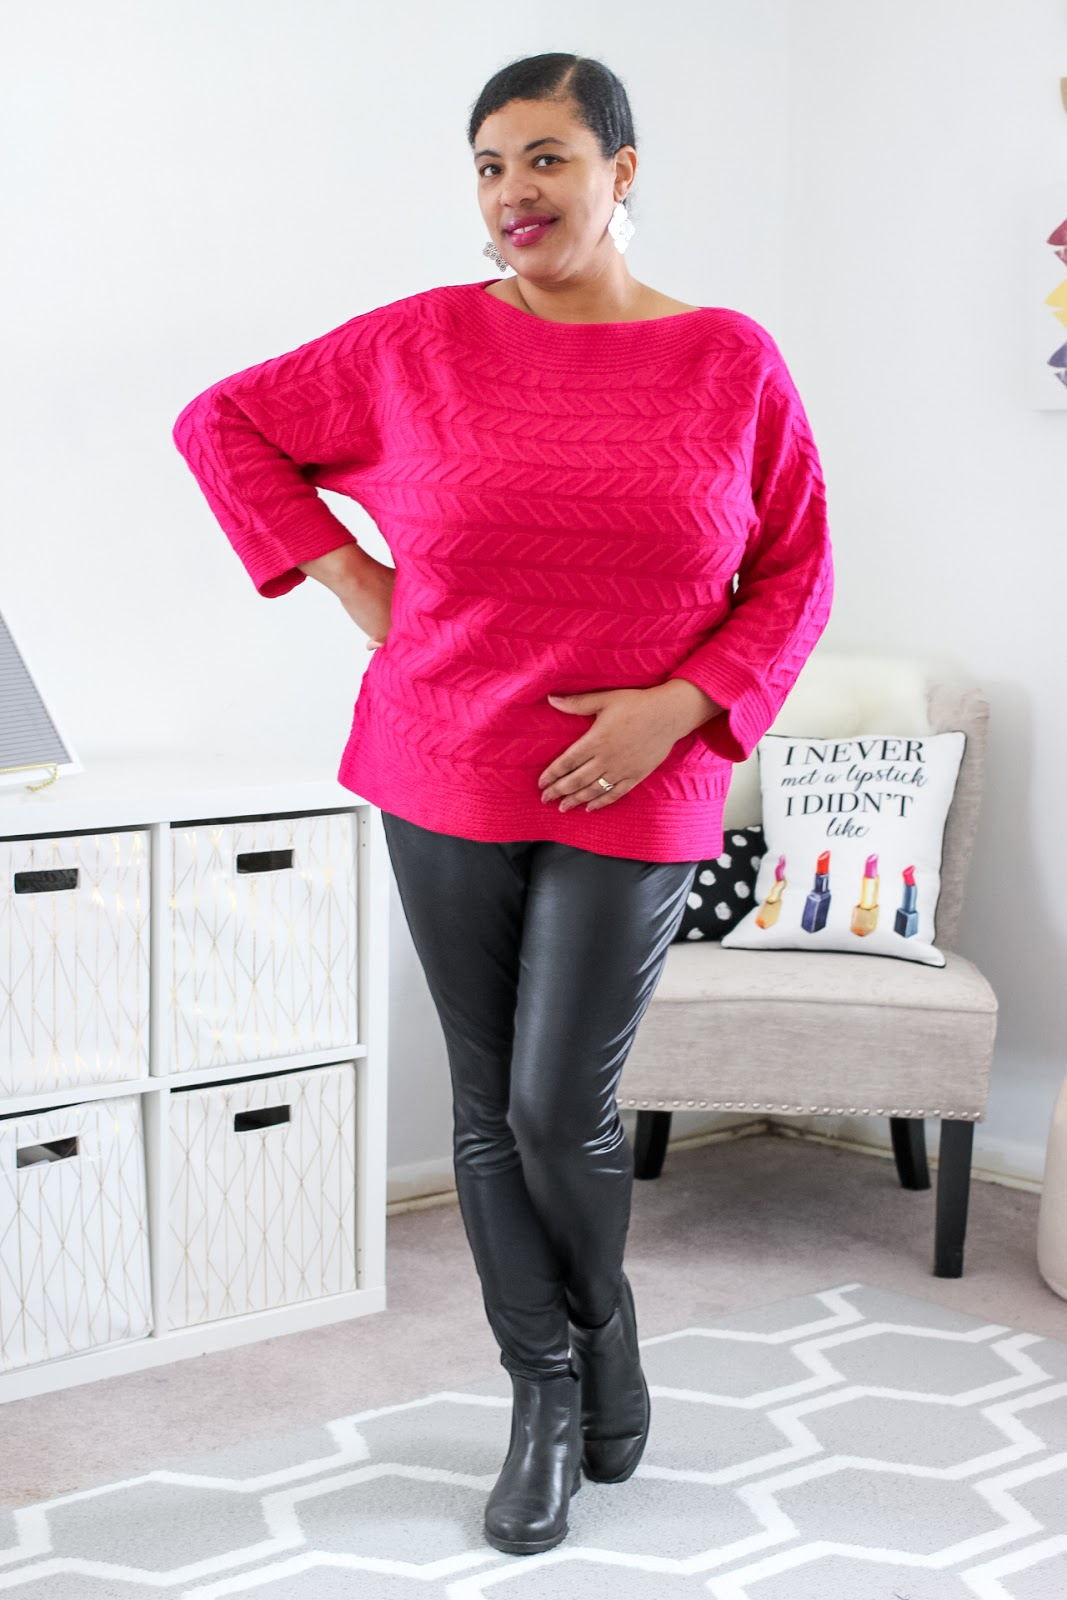 a woman posing wearing a pink sweater and black leggings